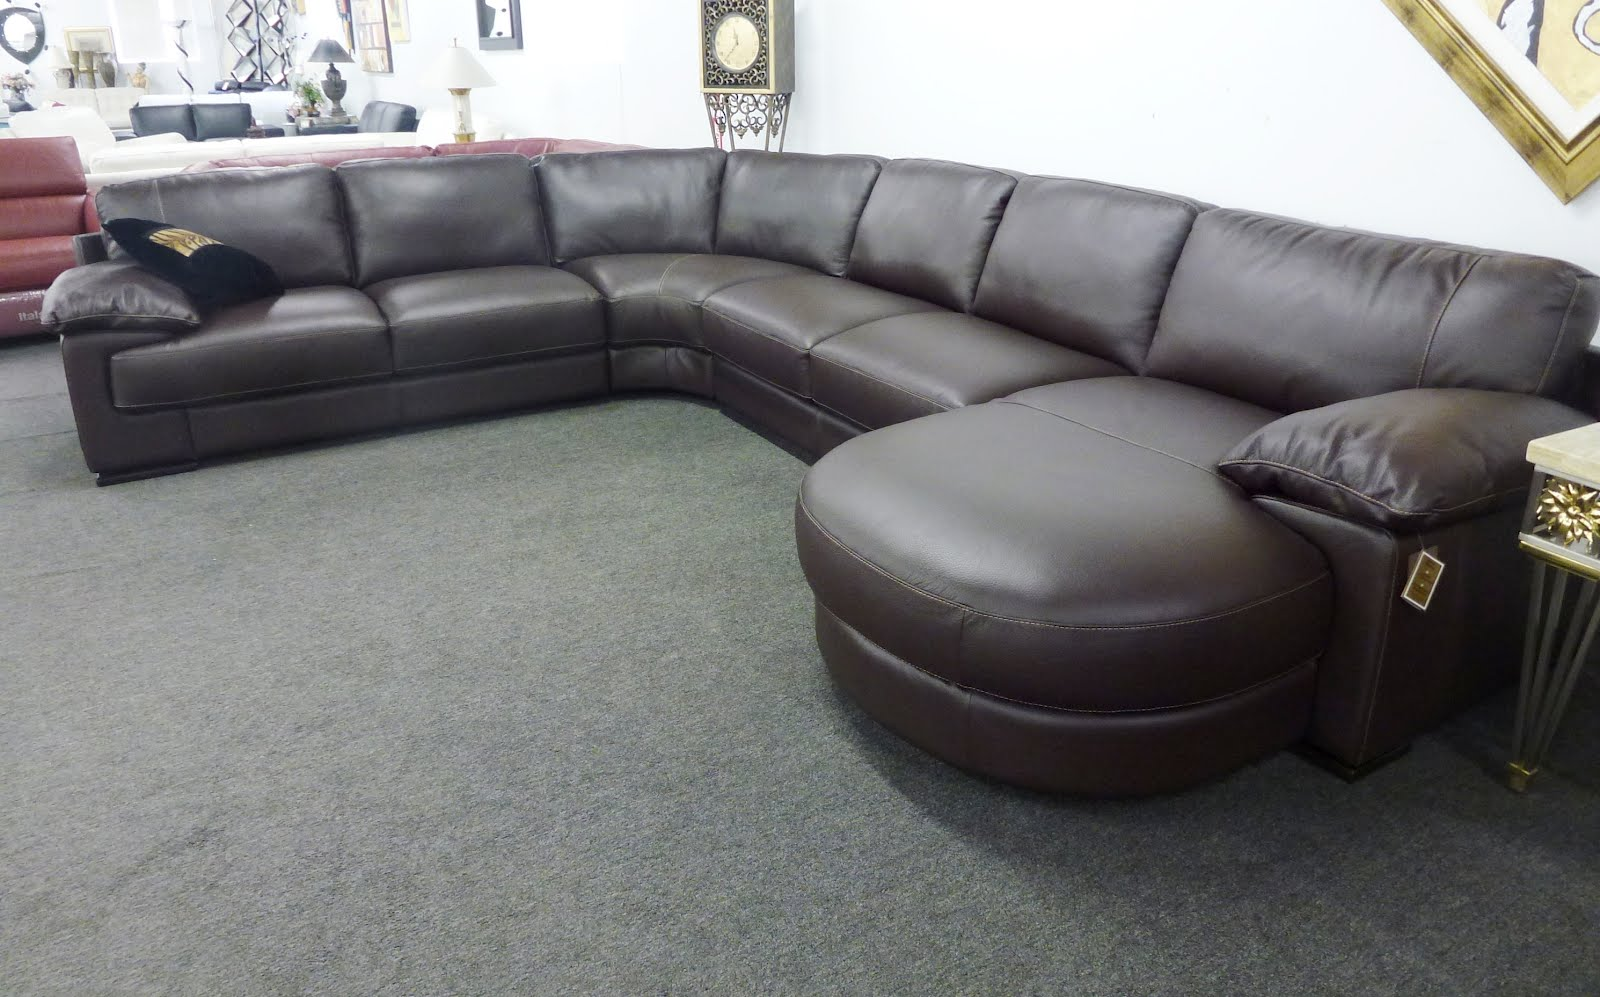 Dante B684 **100% Top Grain Leather** Sectional | Sofas and ...